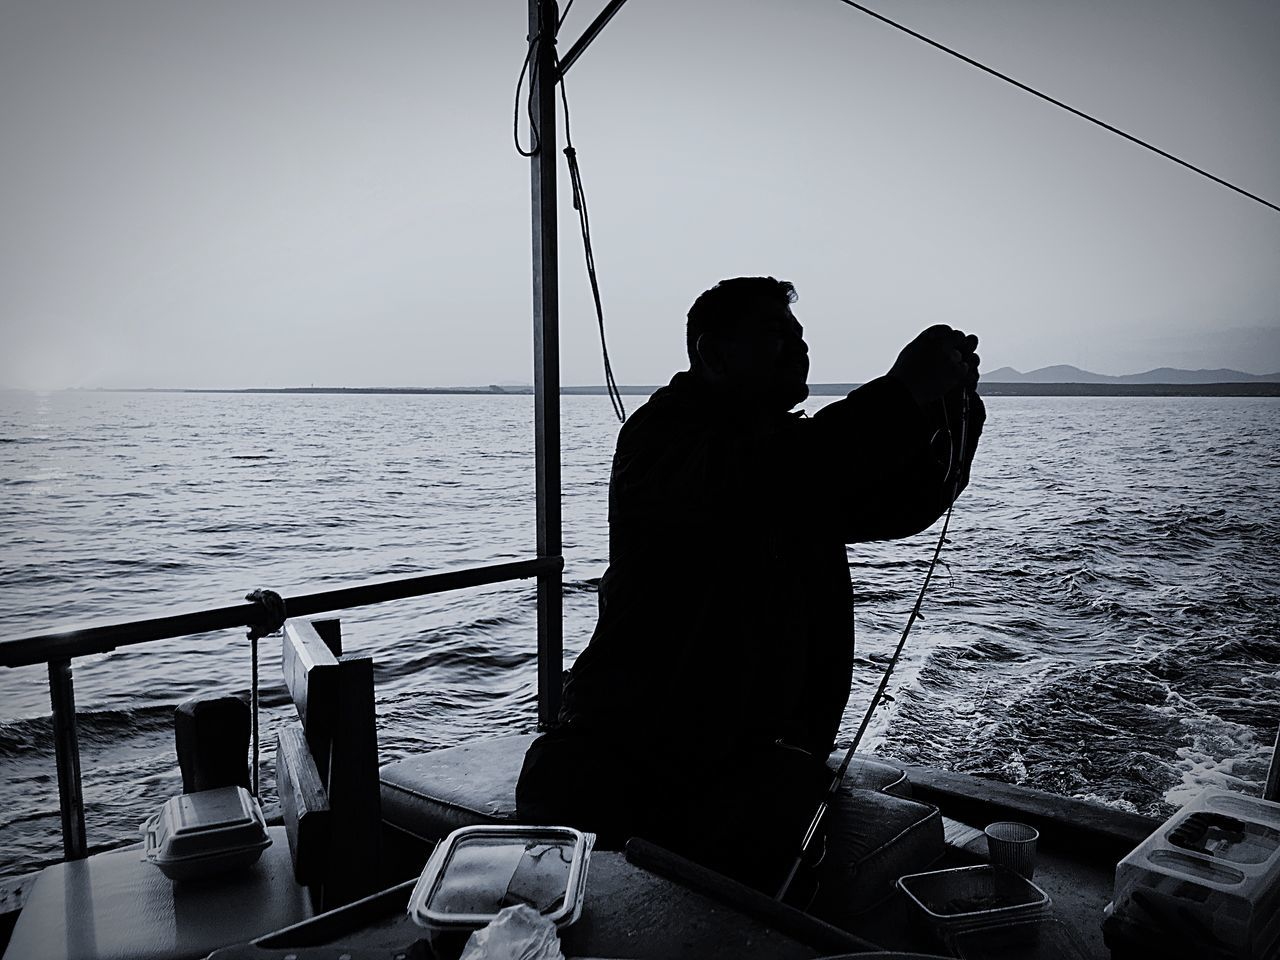 Sailing Yacht Sea Fishing One Person Real People Nature Outdoors Fisherman Clear Sky Beauty In Nature EyeEm EyeEm Best Edits EyeEm Gallery EyeEm Best Shots Sea And Sky Blackandwhite Blackandwhite Photography Shadow Silhouette Hello World Eye4photography  Check This Out Travelling The Secret Spaces EyeEm Diversity